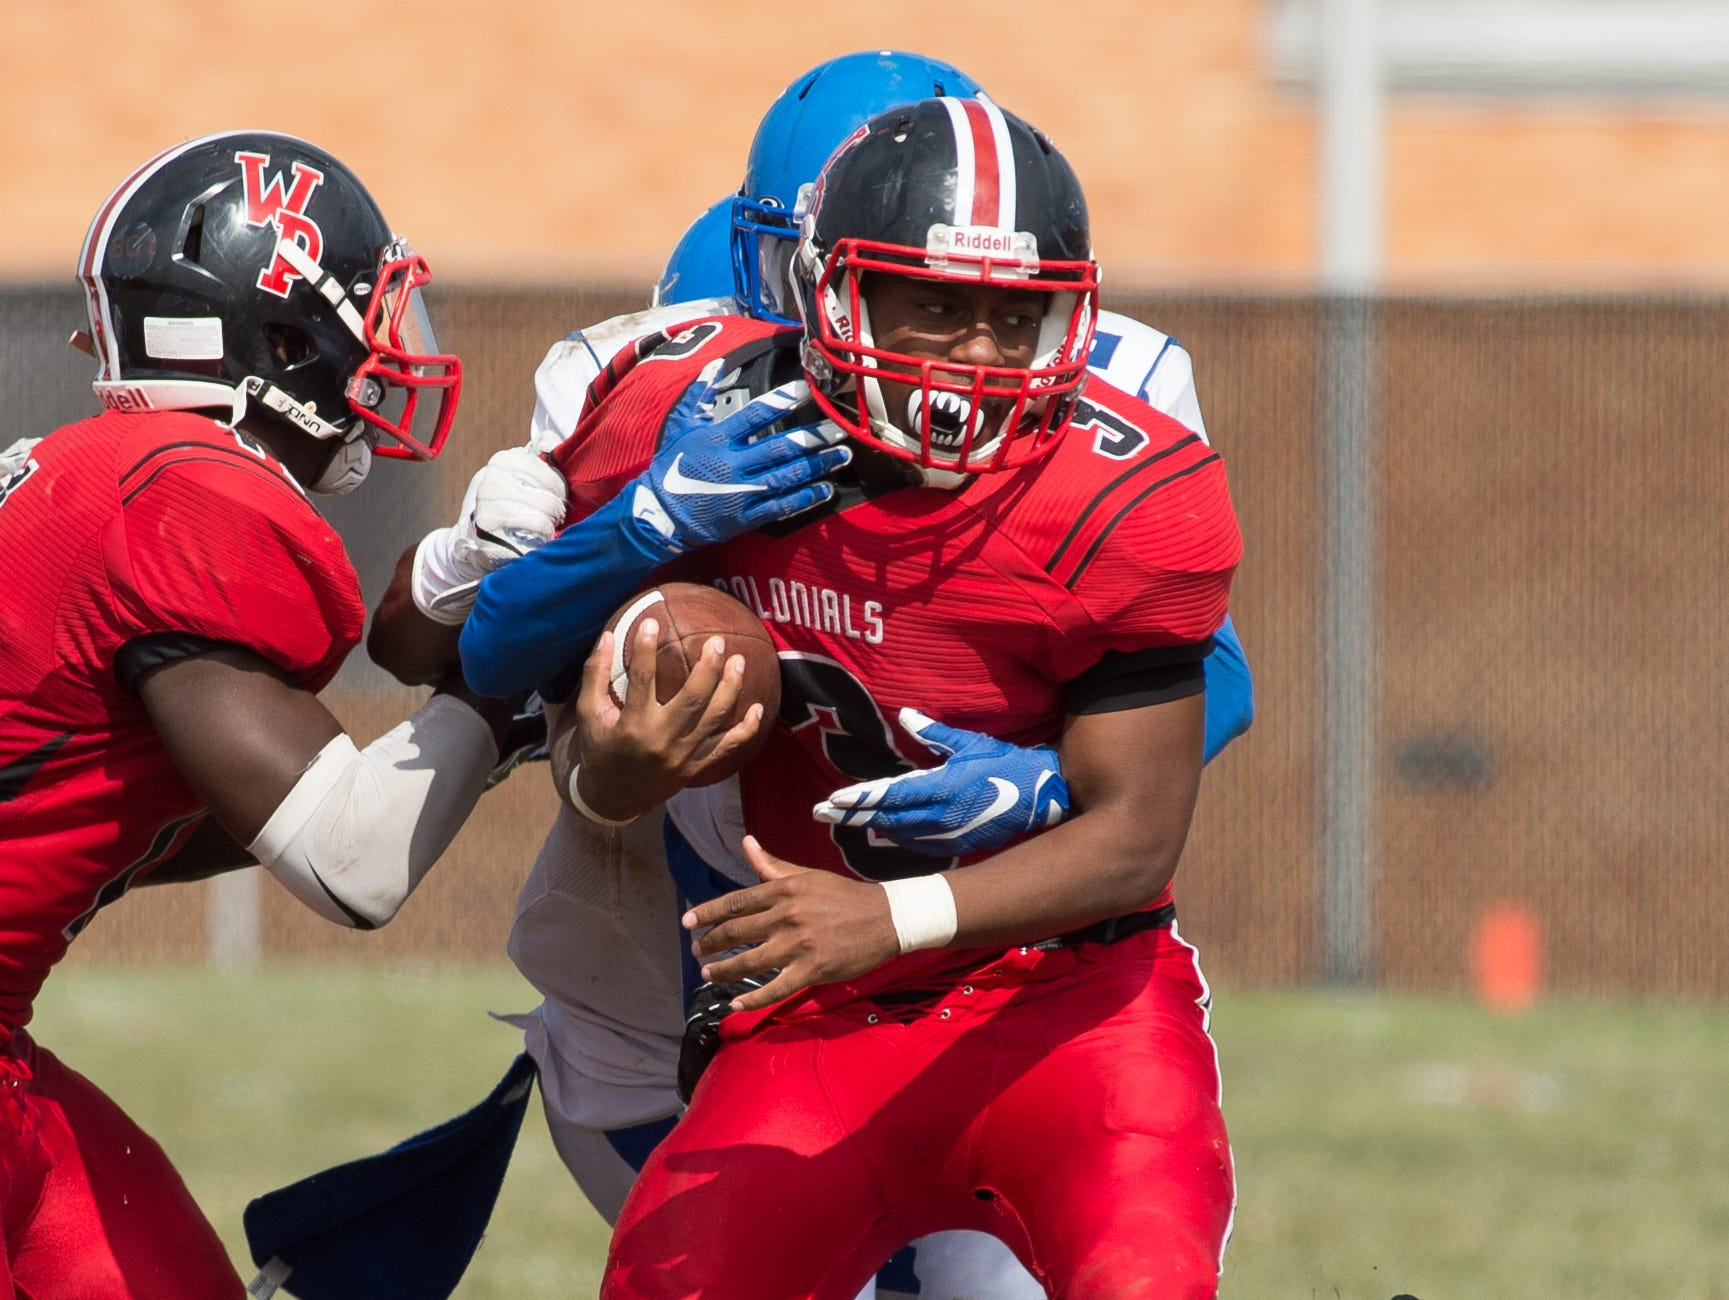 William Penn's Joe Greenwood (3) tries to run with the ball in their game against Middletown.